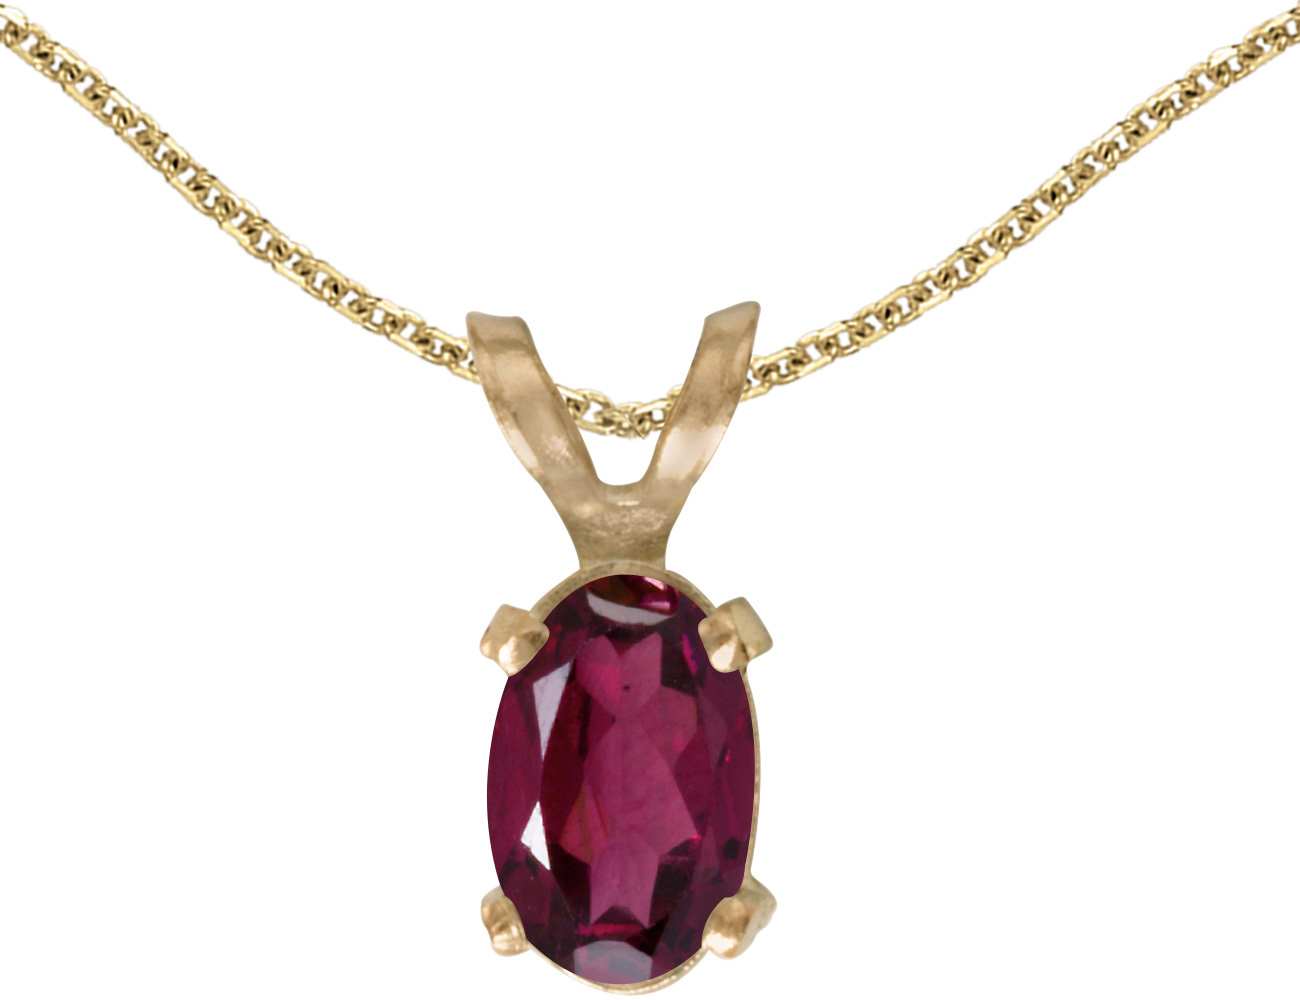 14k Yellow Gold Oval Rhodolite Garnet Pendant (Chain NOT included)